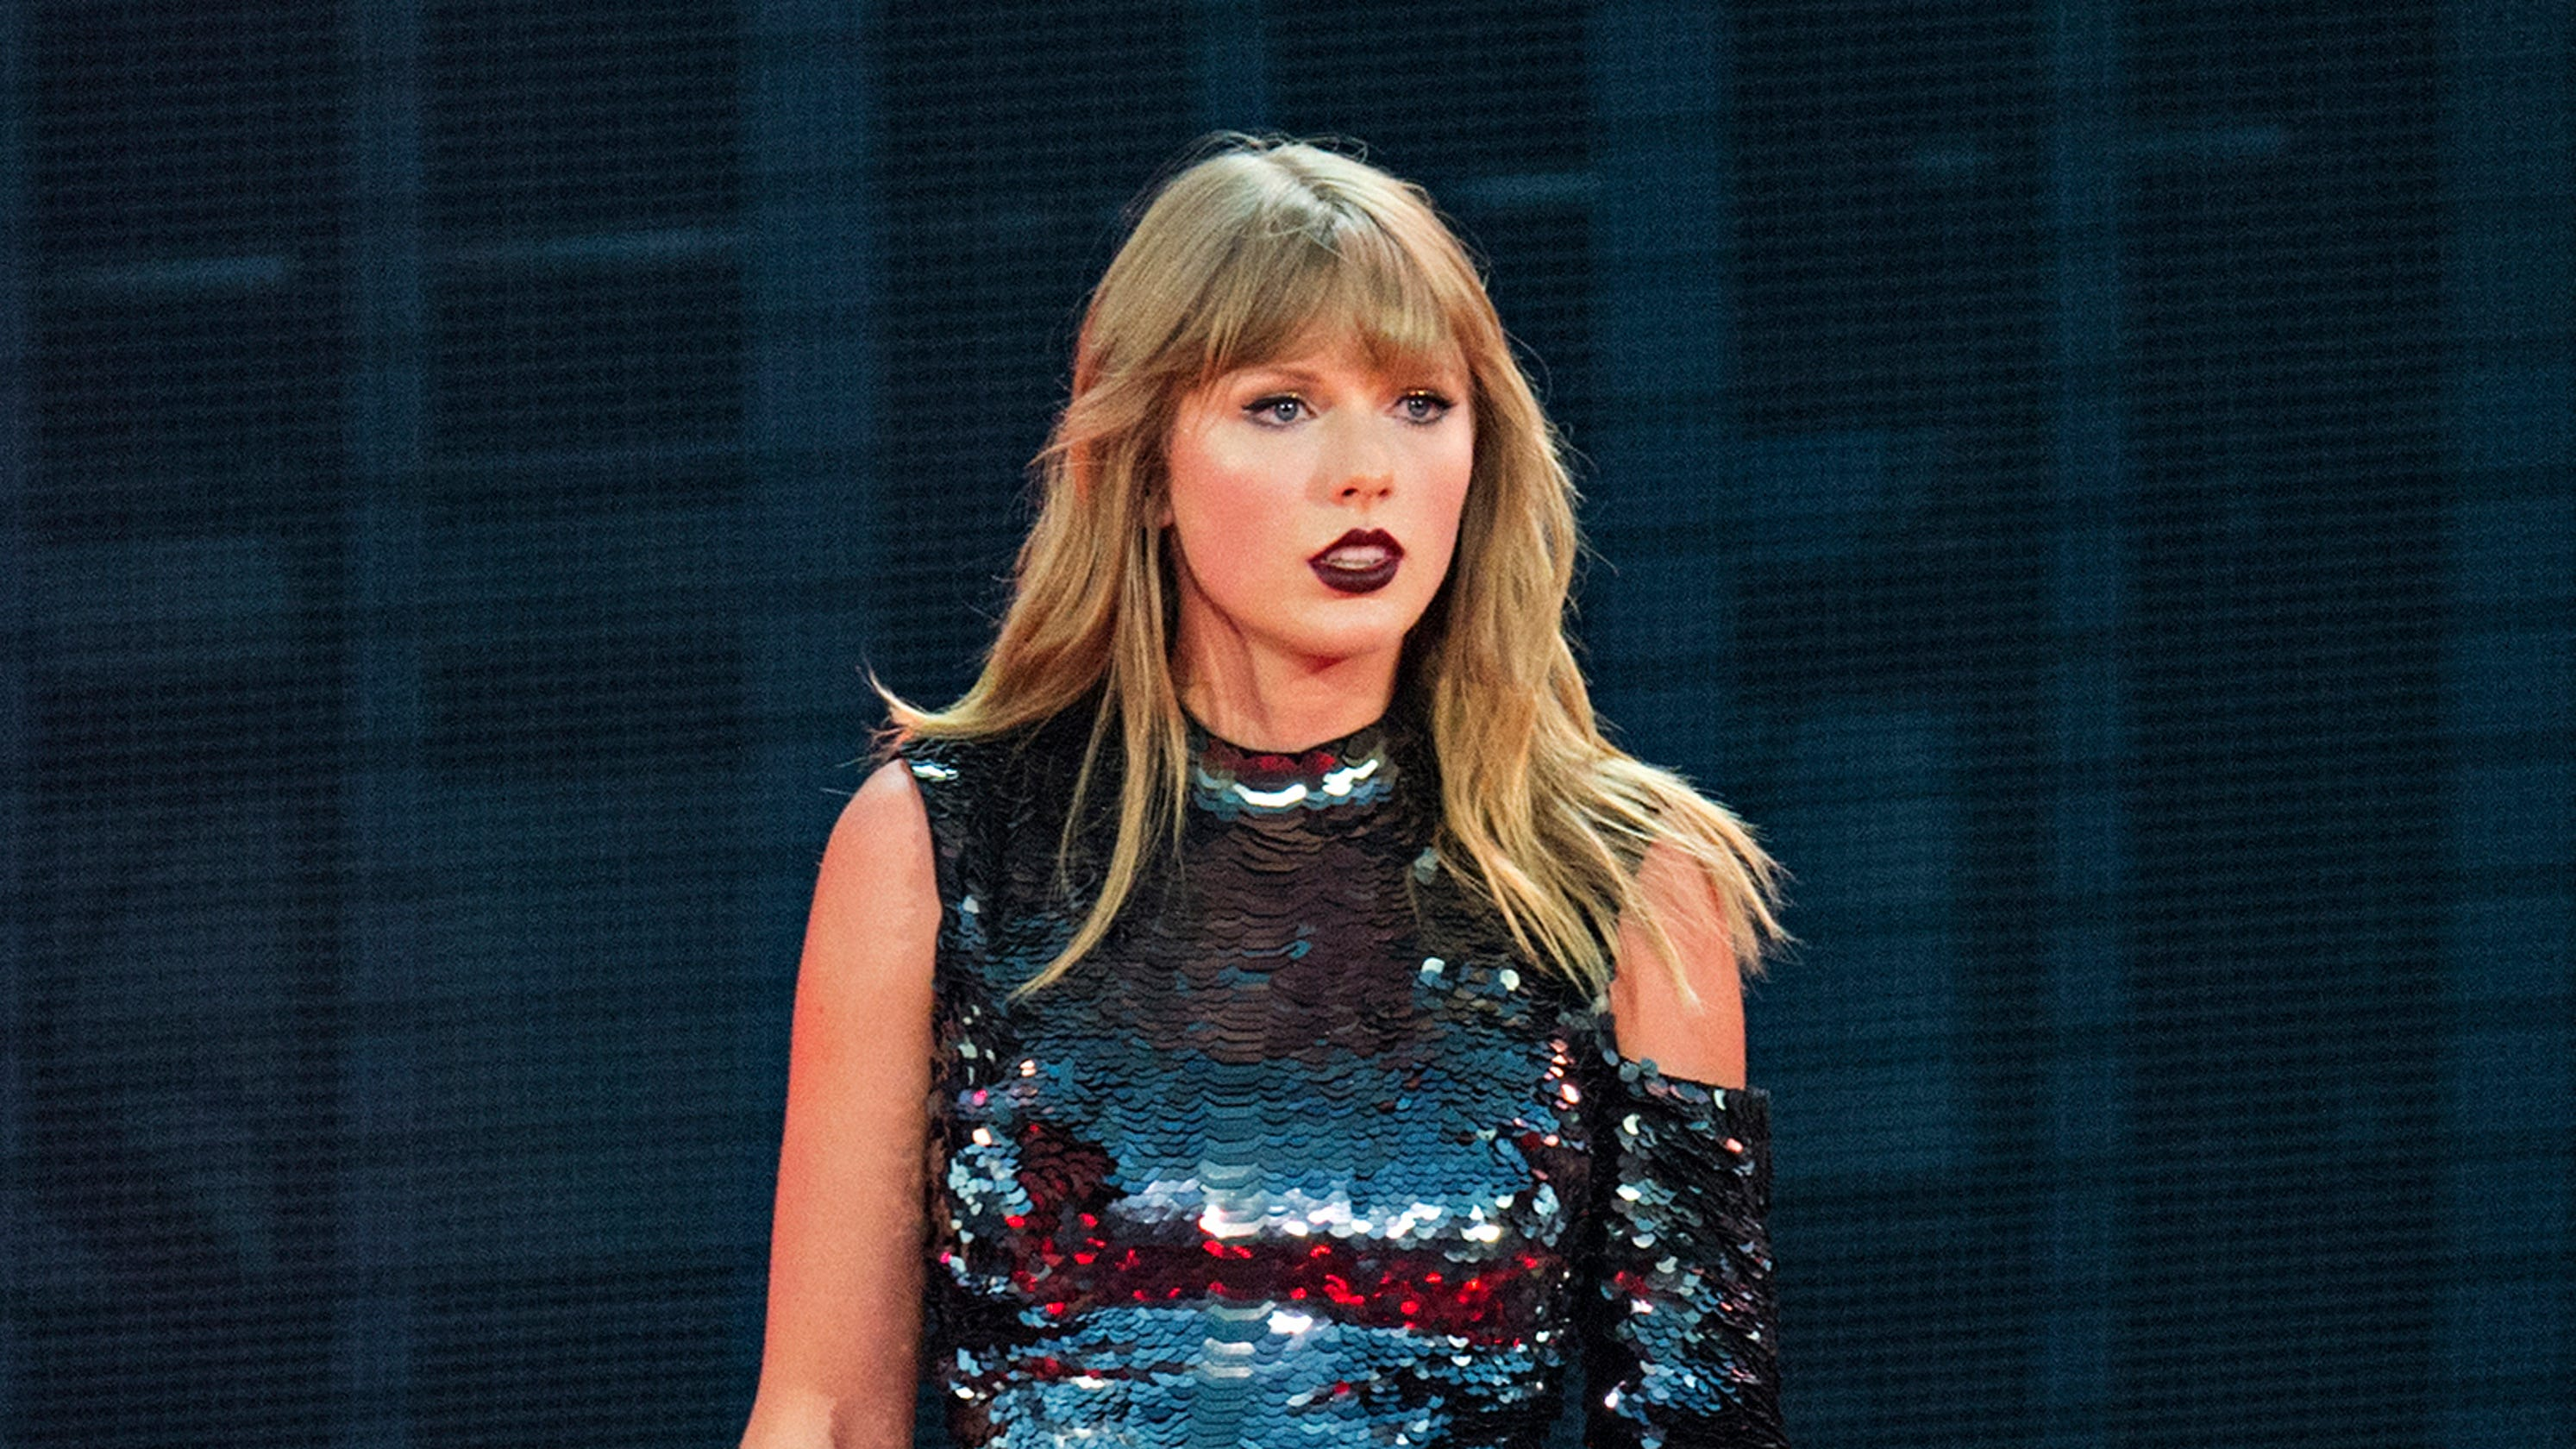 Taylor Swift Sexual Assault Case Singer Observes Anniversary In Tampa